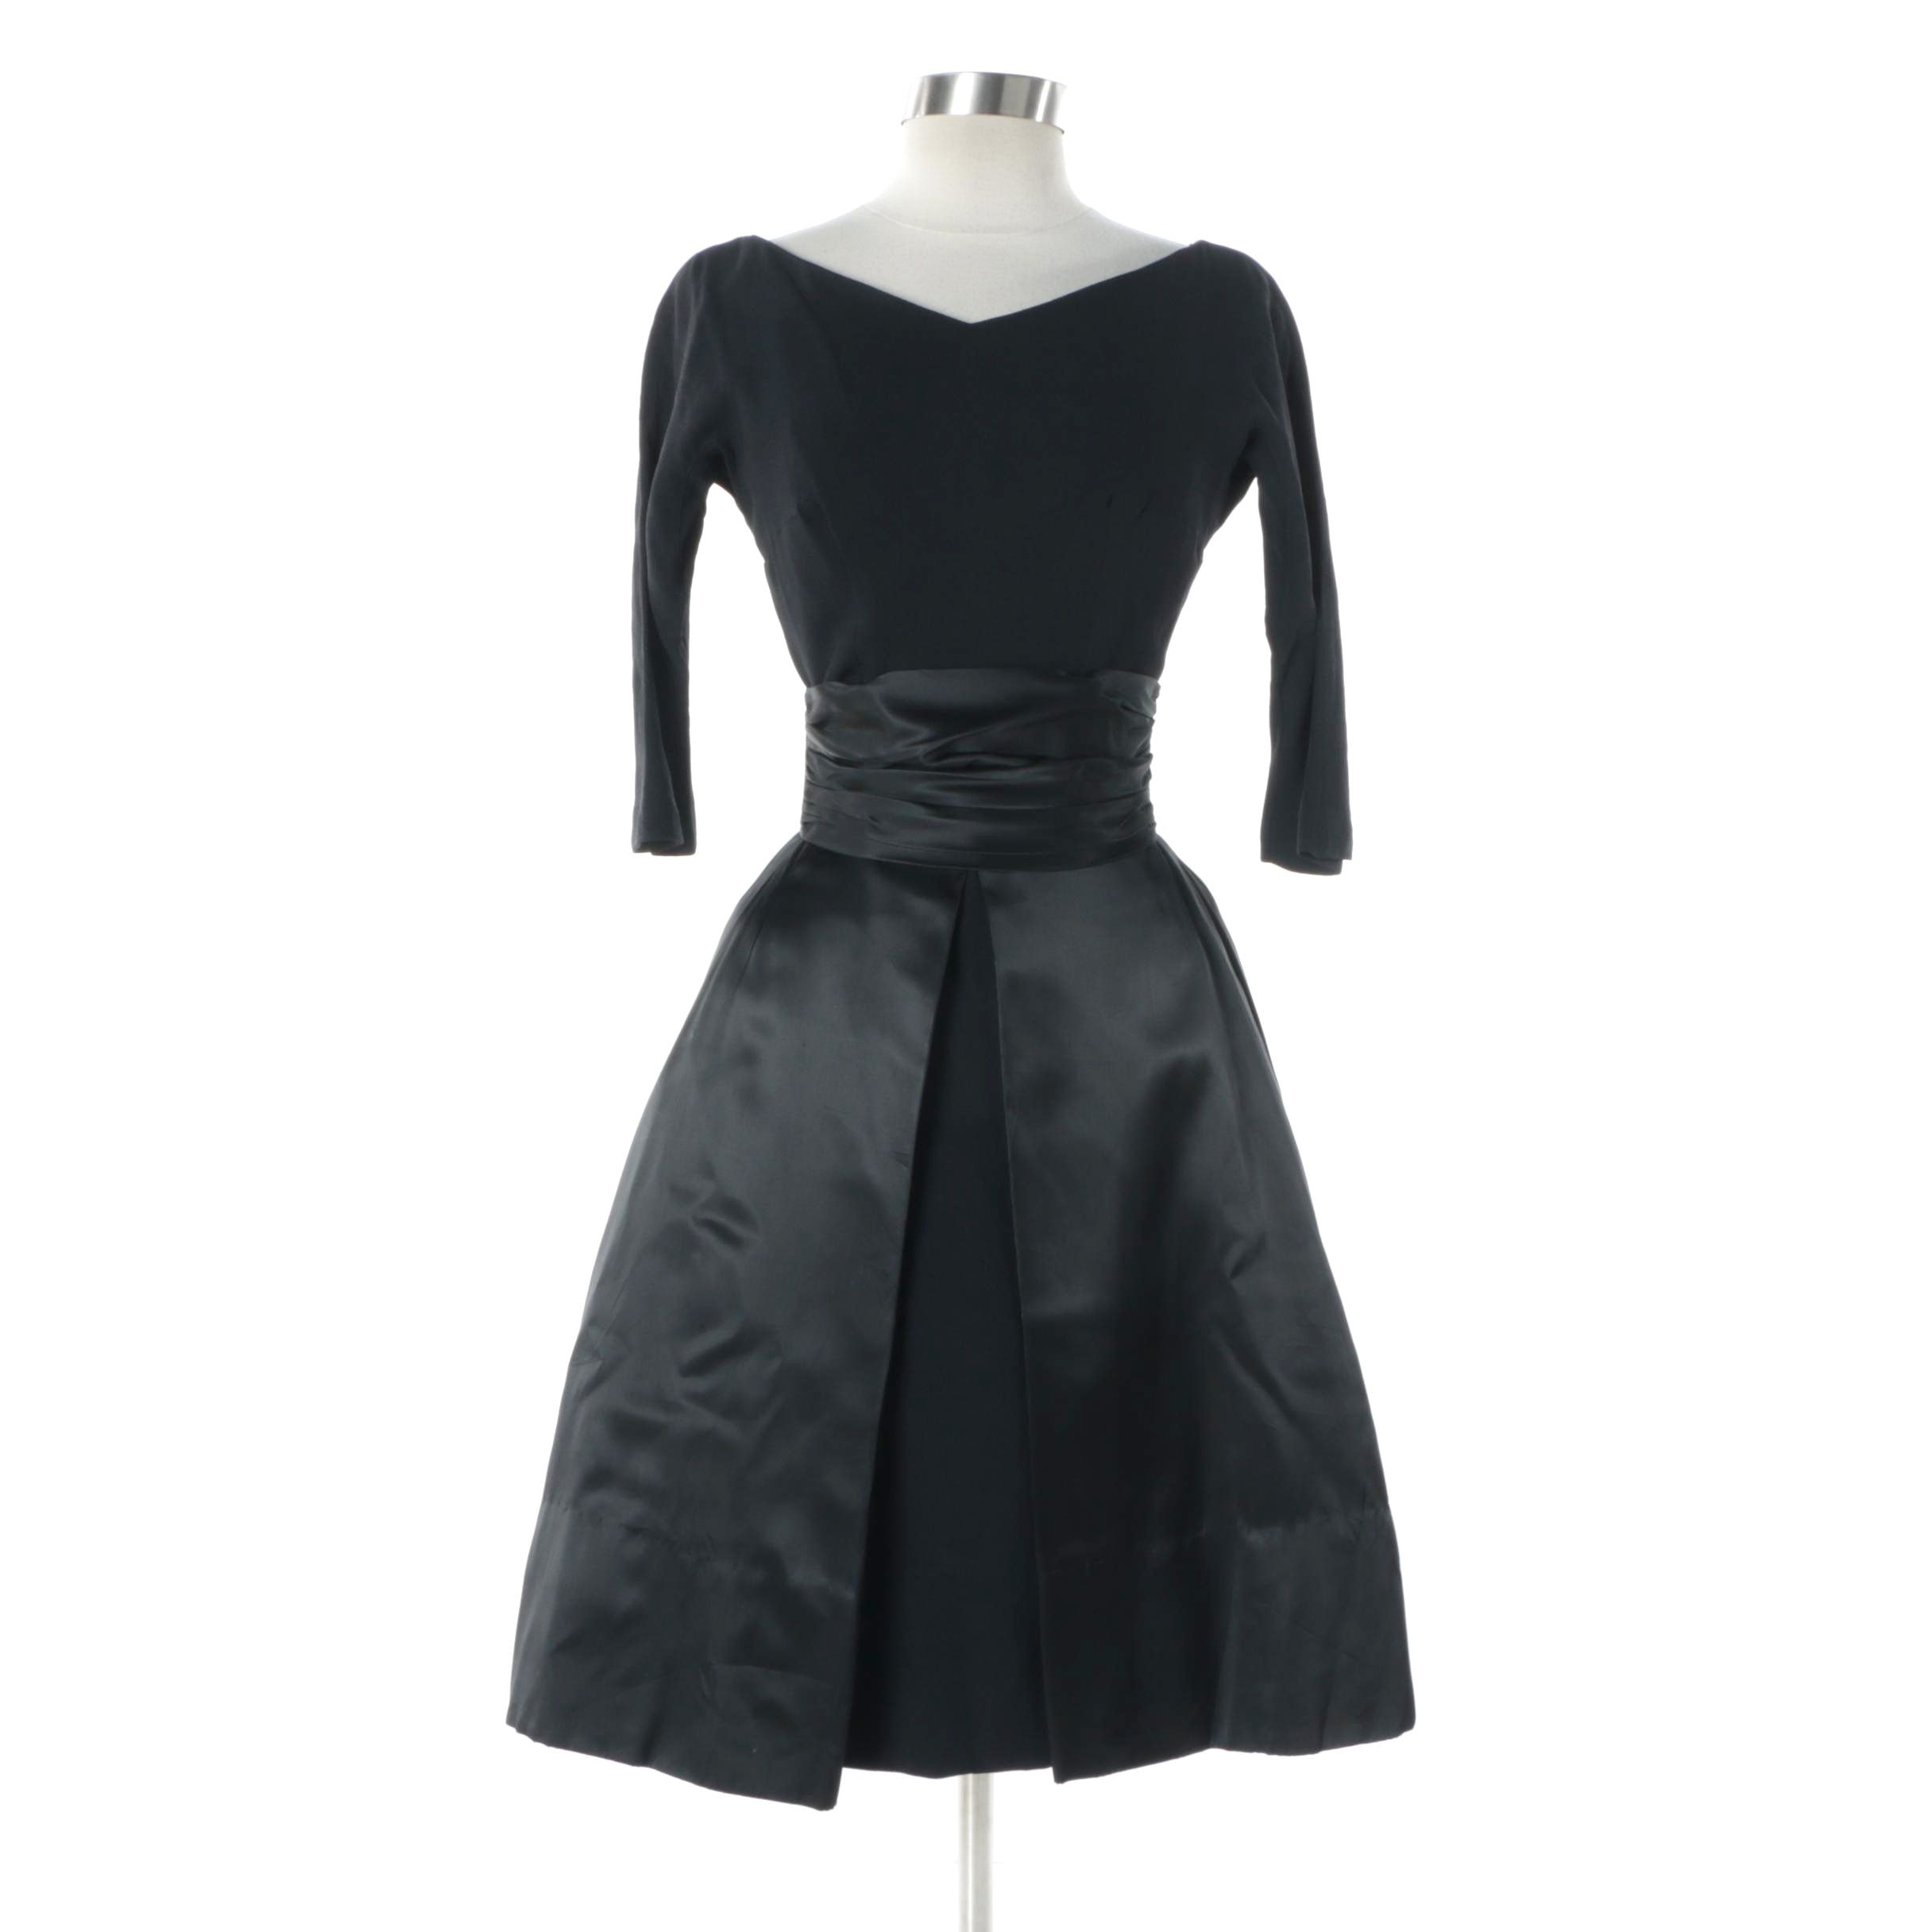 Early 1960s Vintage Gigi Young Black Dress with Petal Skirt